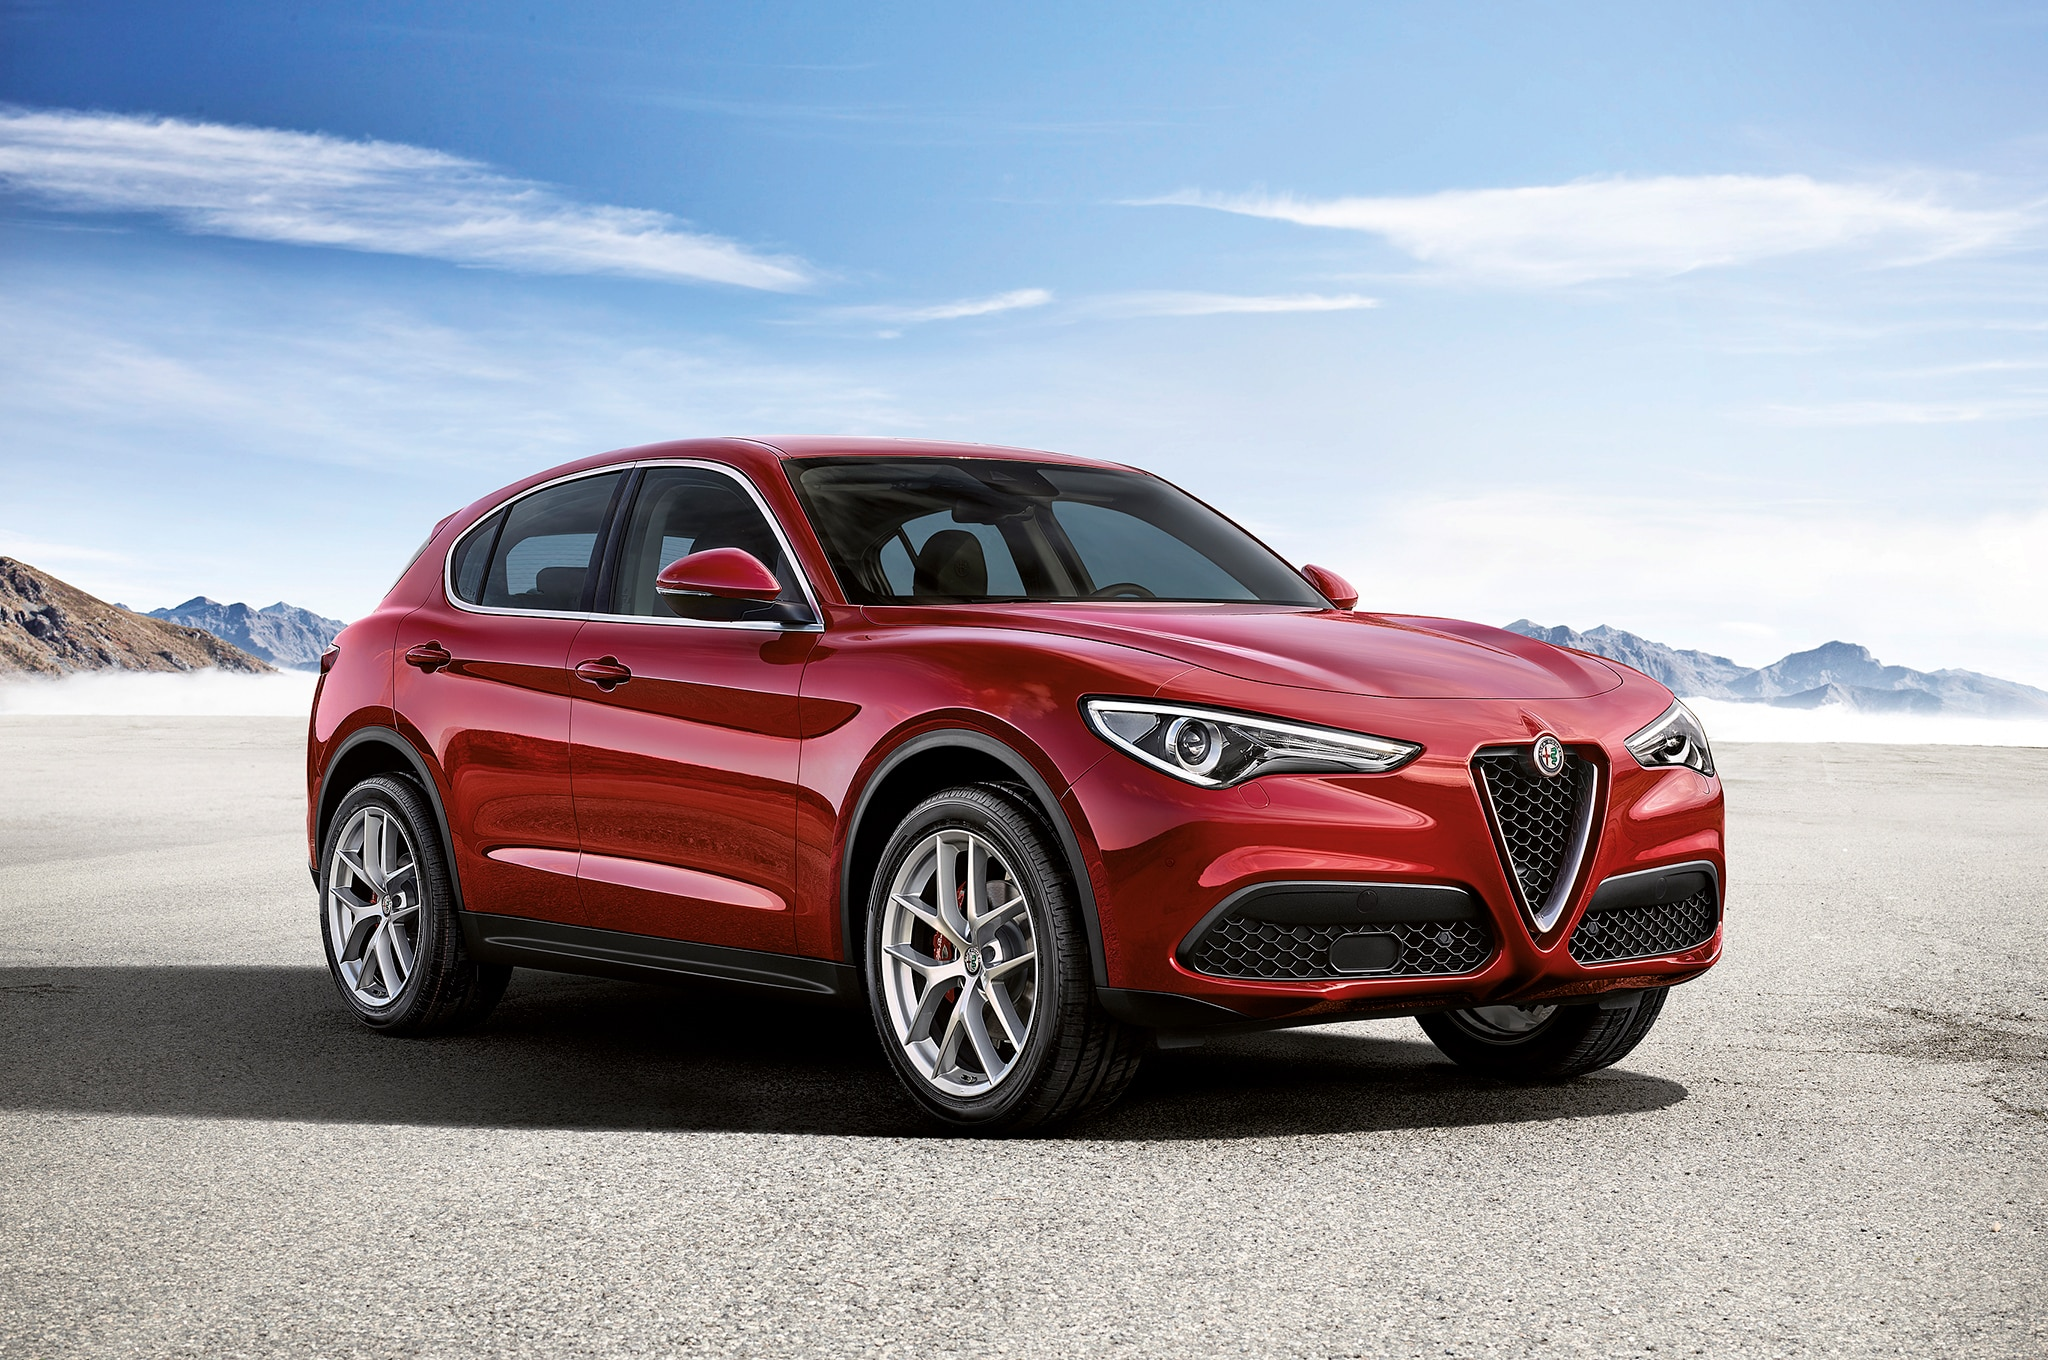 Alfa-Romeo-Stelvio-First-Edition-front-three-quarter-02-1